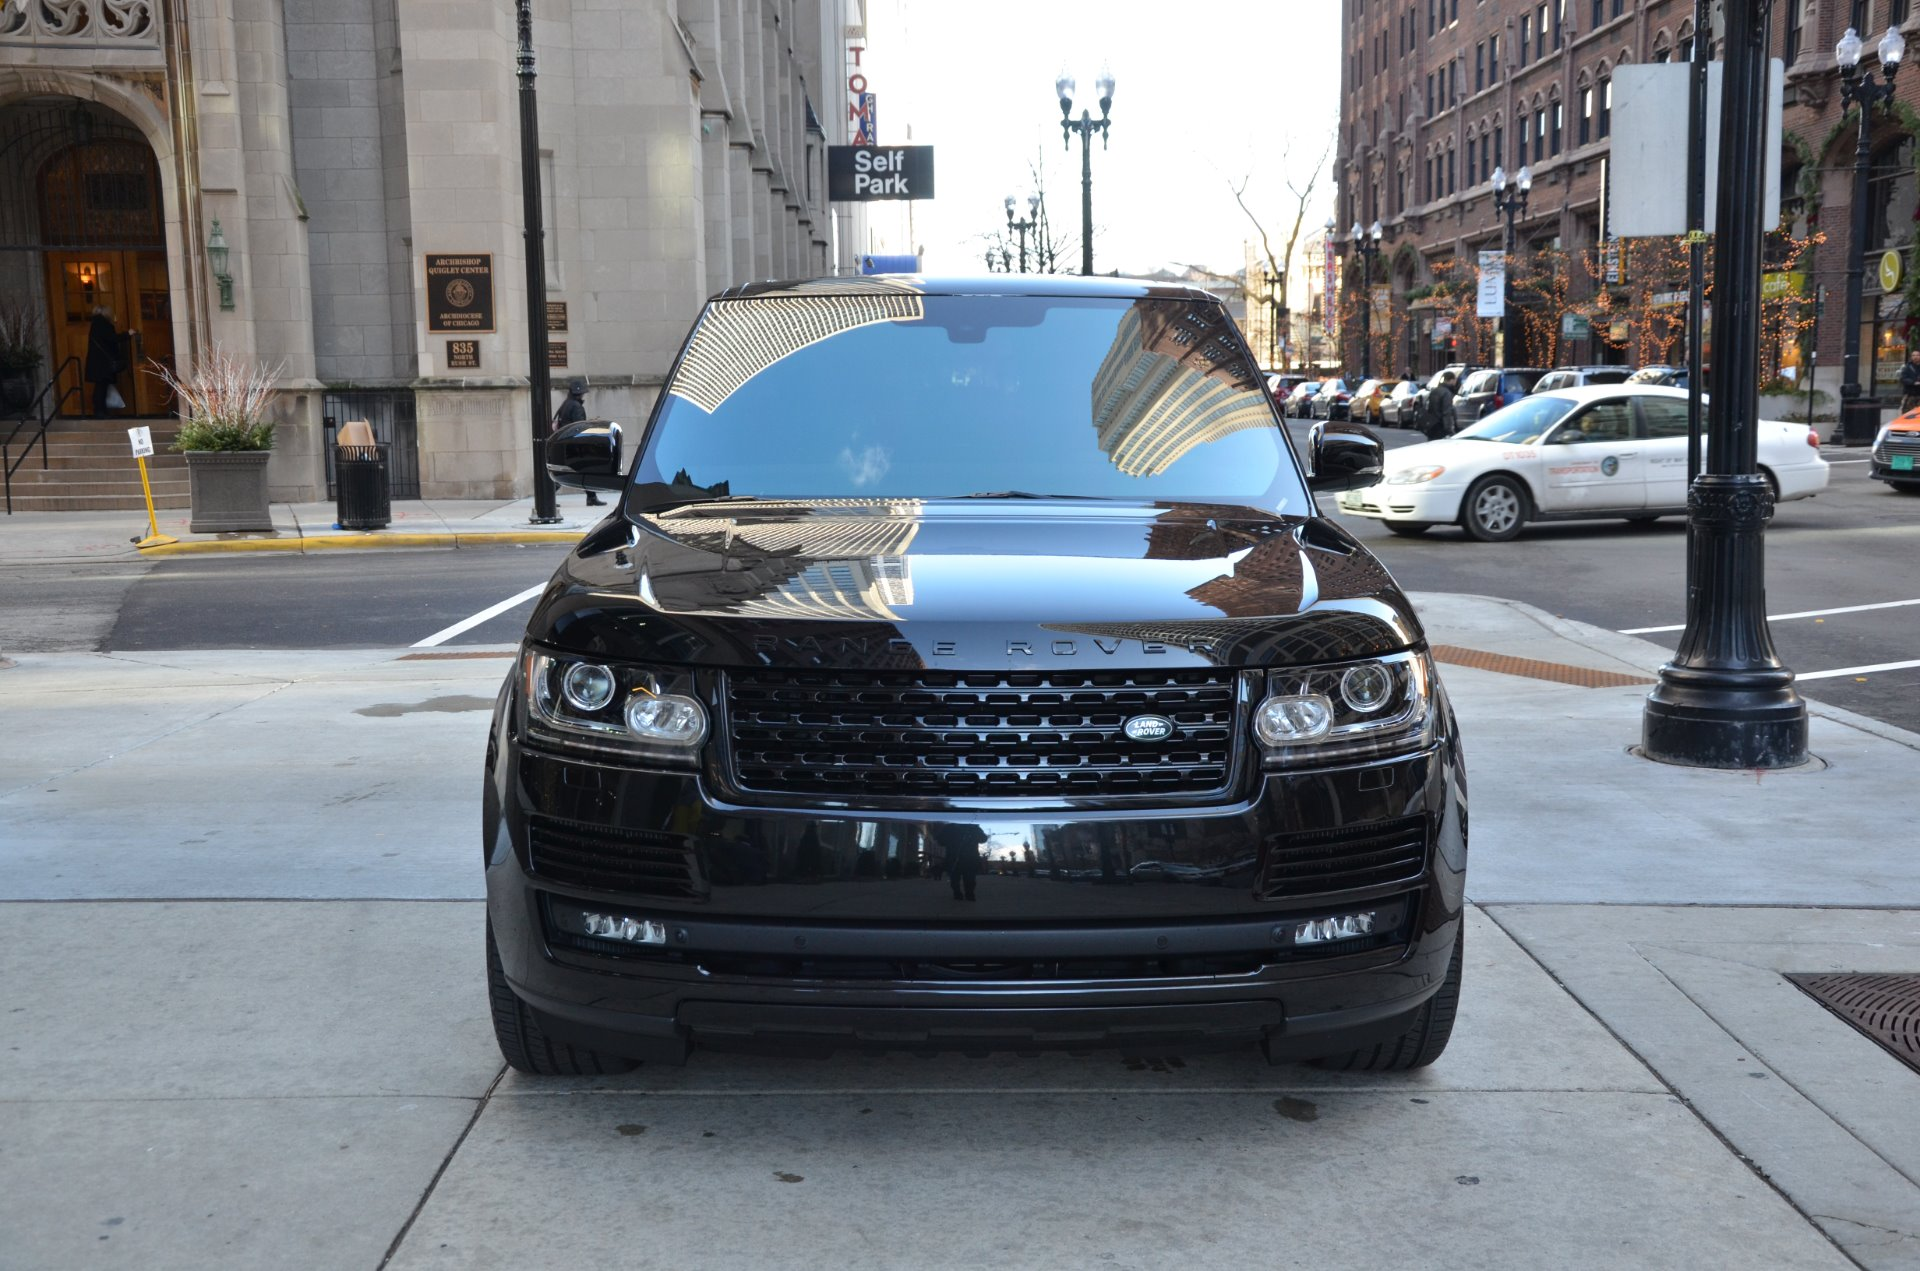 Range rover ebony edition for sale